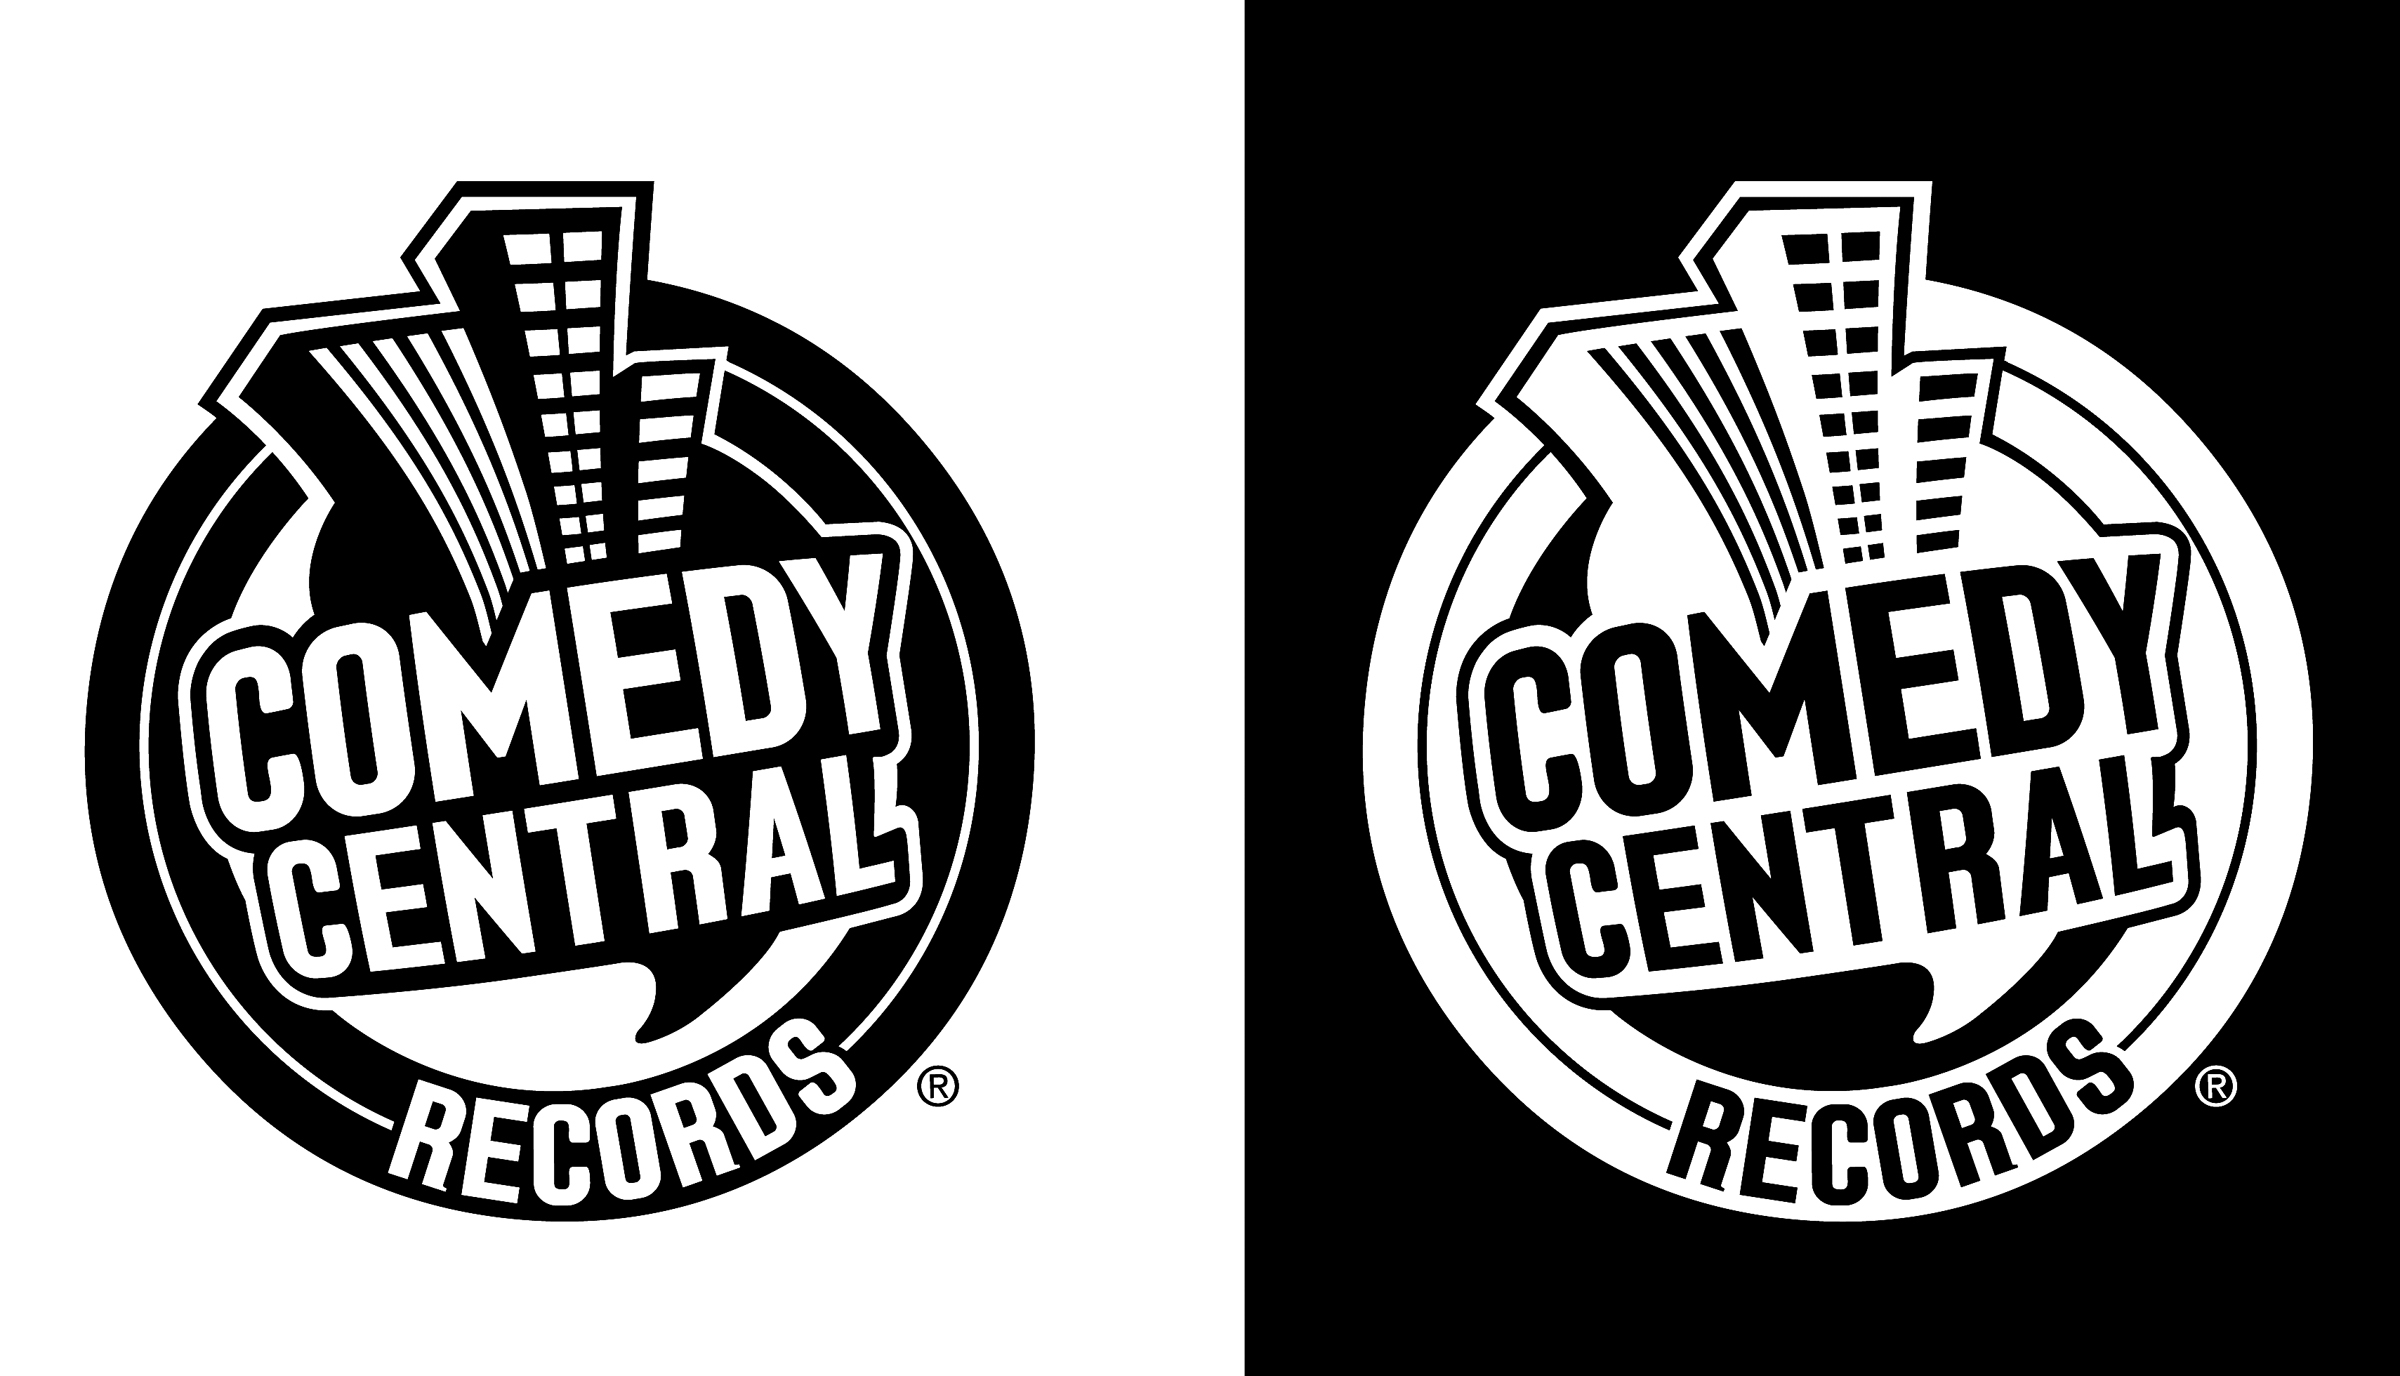 Comedy Central Records